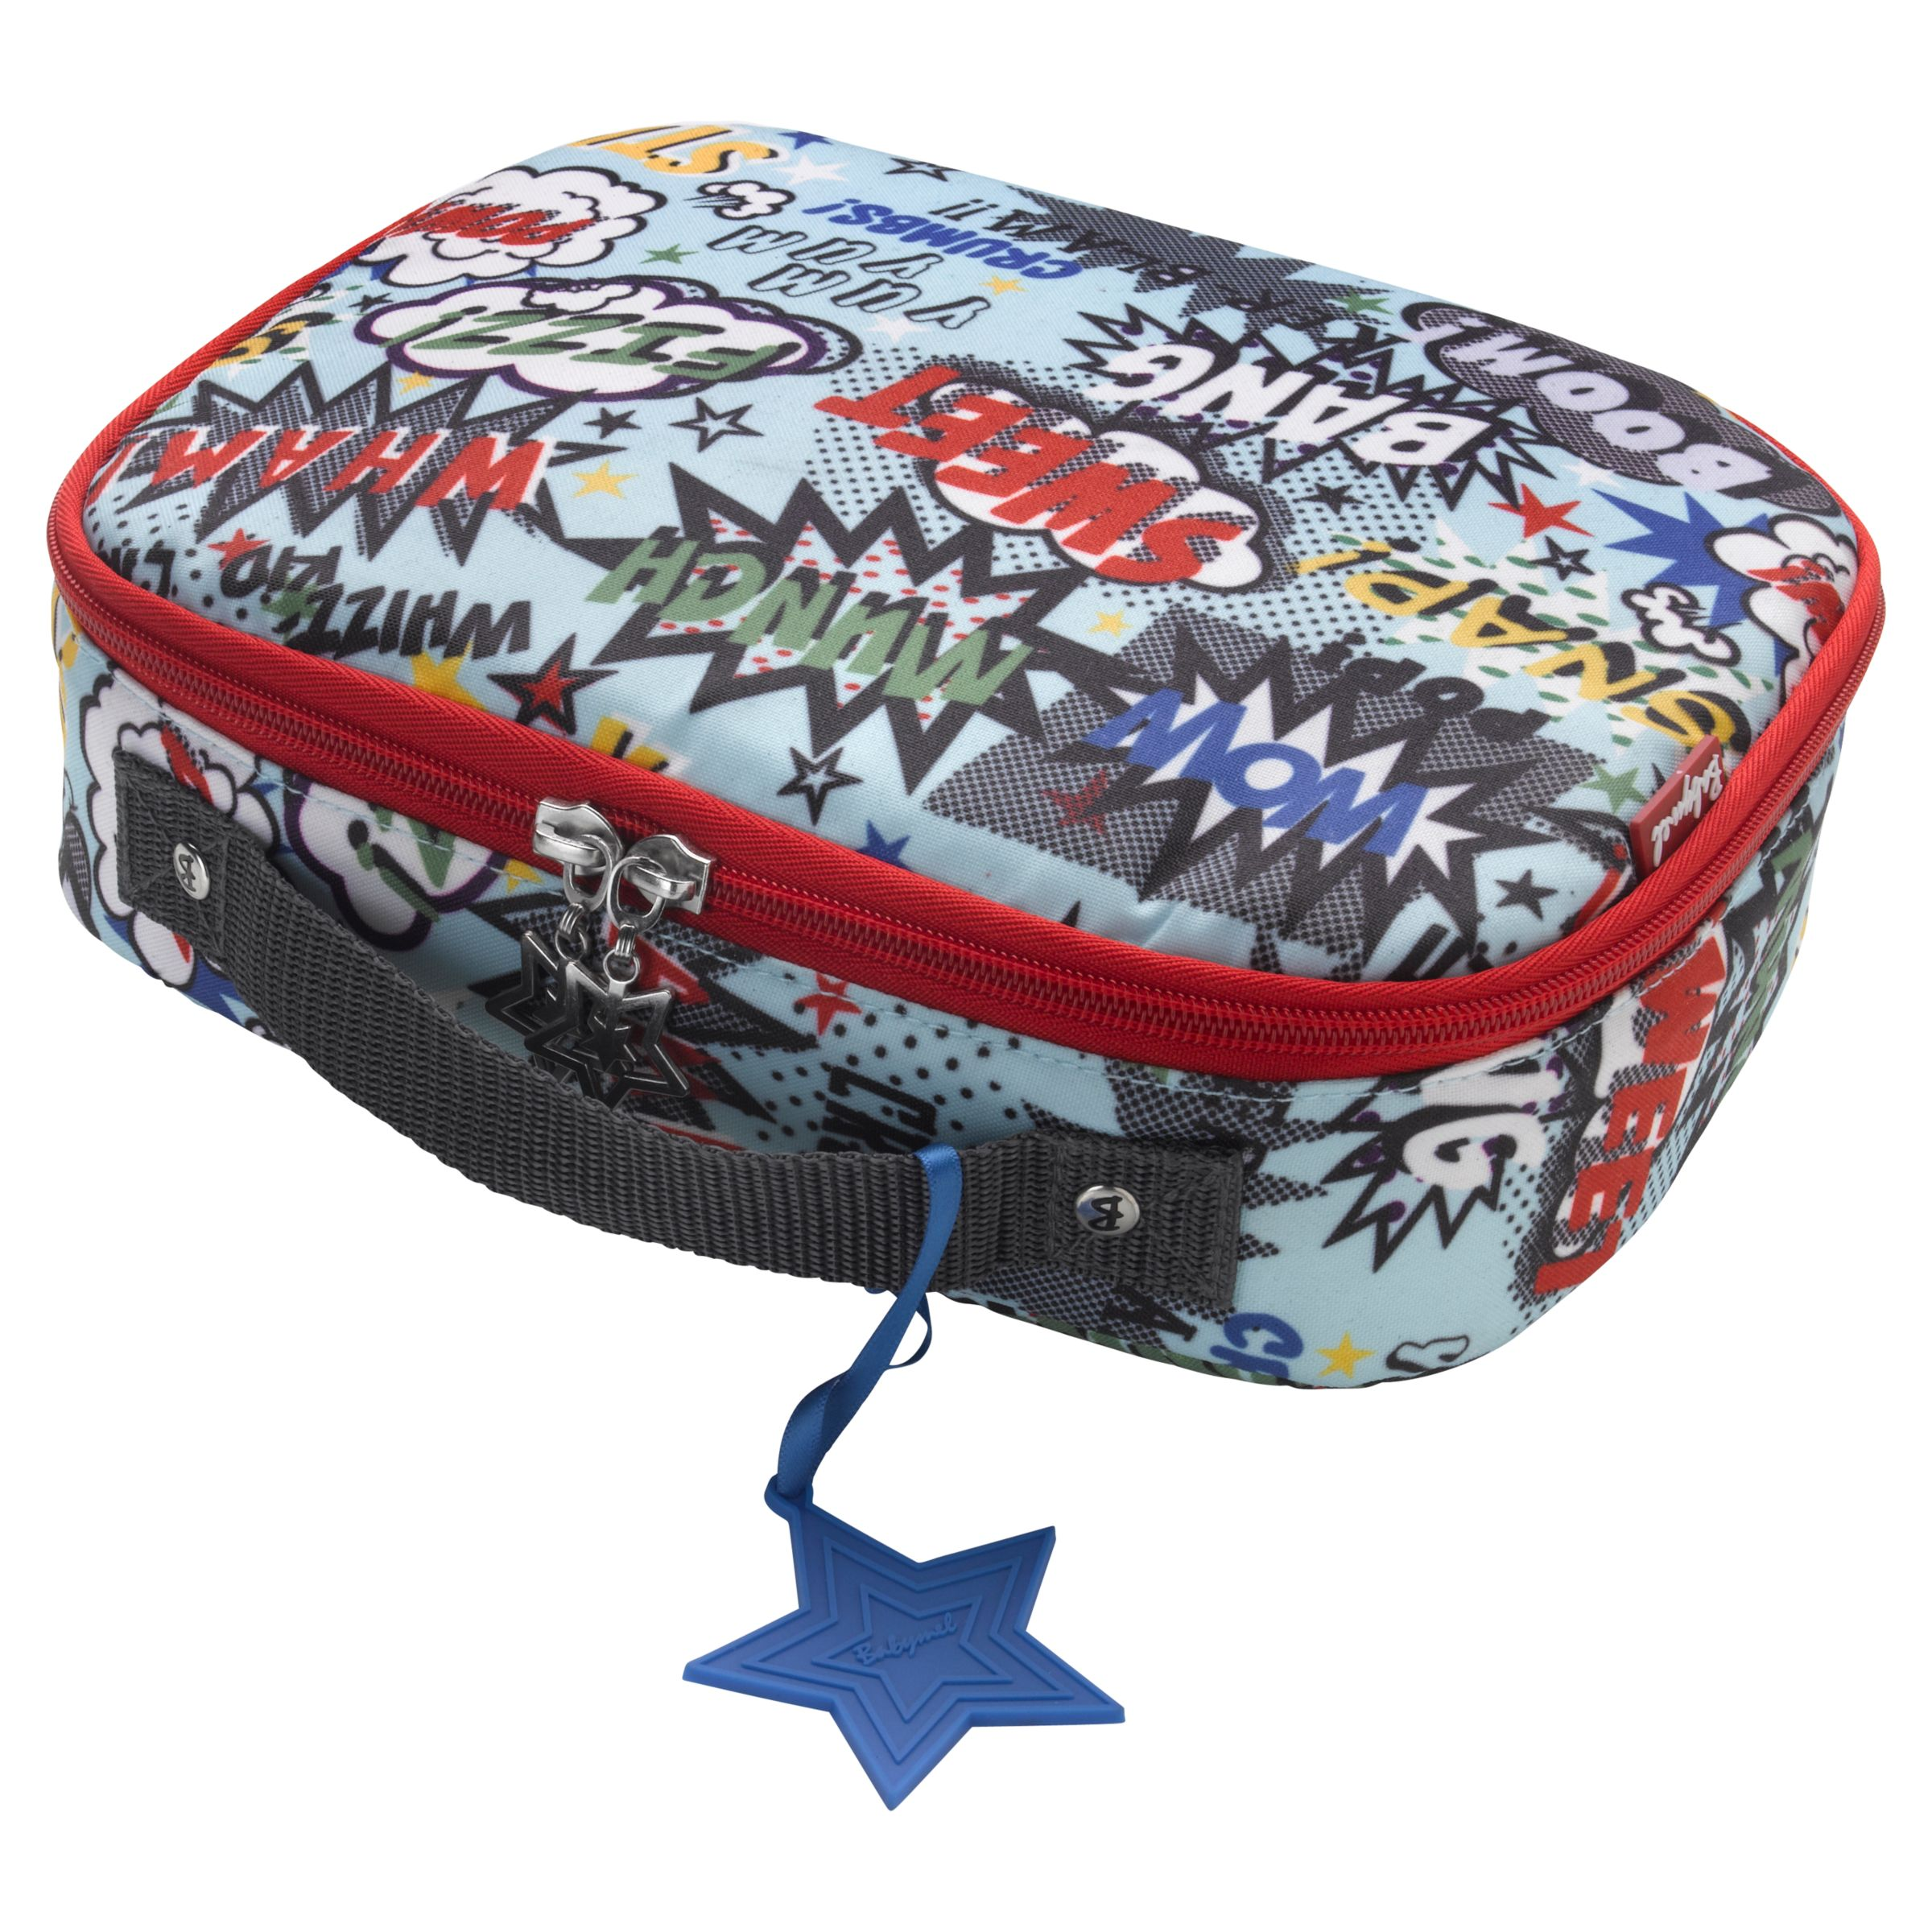 Babymel Pow Lunch Bag, Blue/Multi